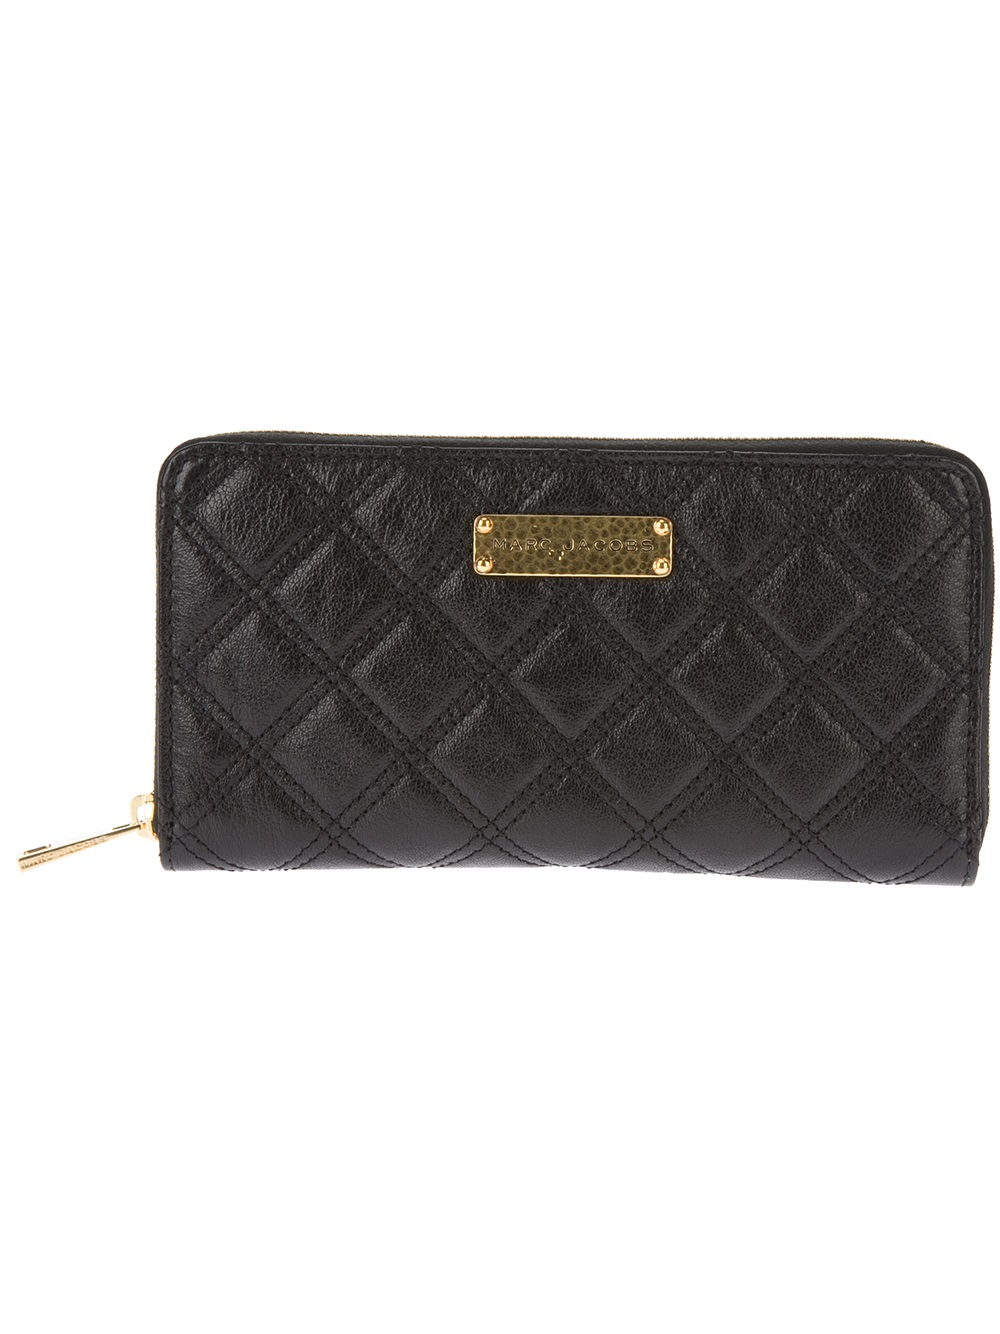 Marc Jacobs The Sister Quilted Wallet in Black